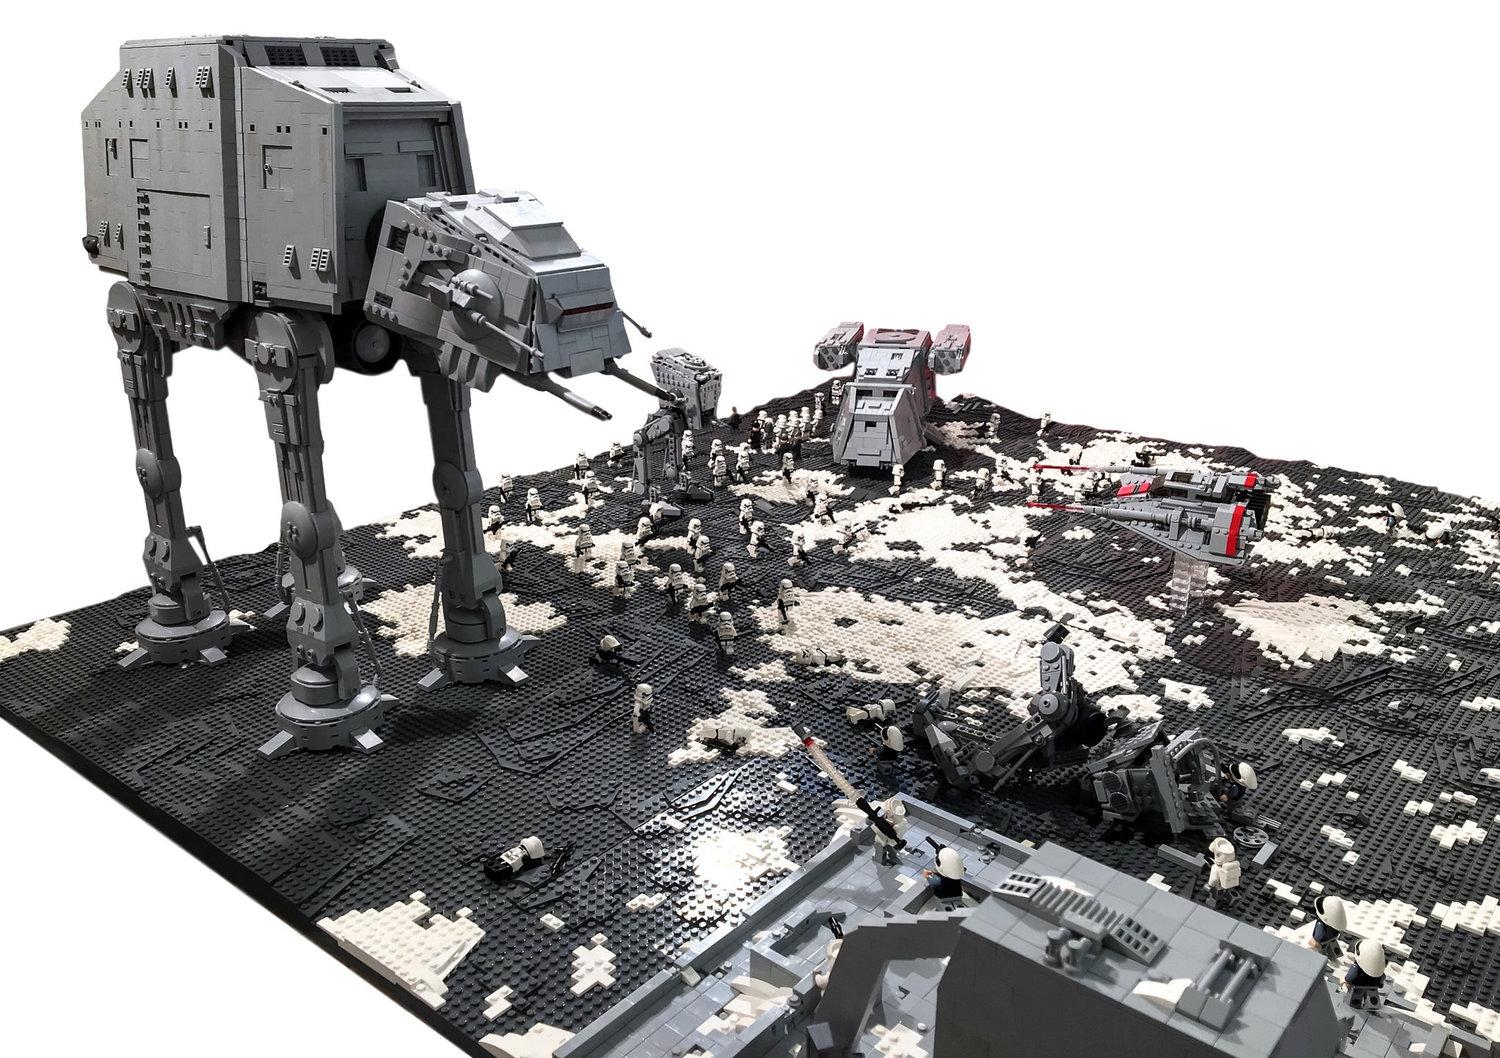 How To Build A Lego Star Wars Battlefield